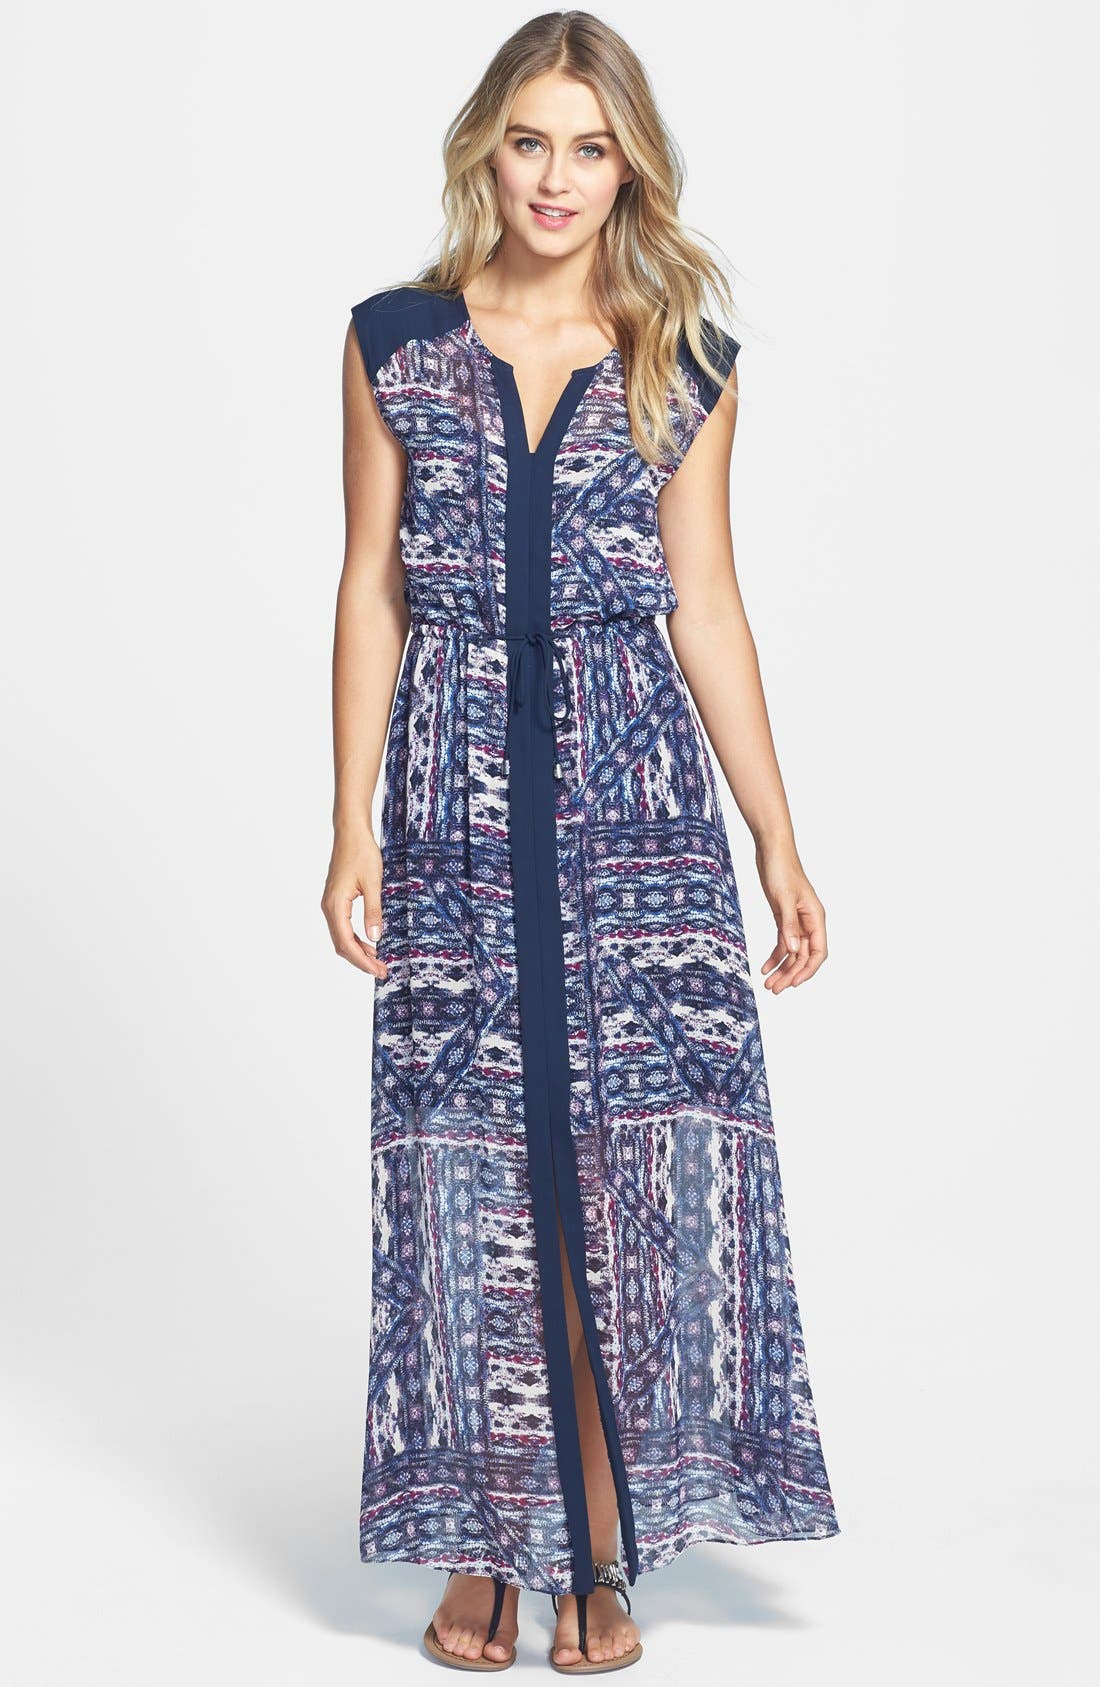 Alternate Image 1 Selected - Vince Camuto 'Tribal Patchwork' Tie Waist Maxi Dress (Regular & Petite)